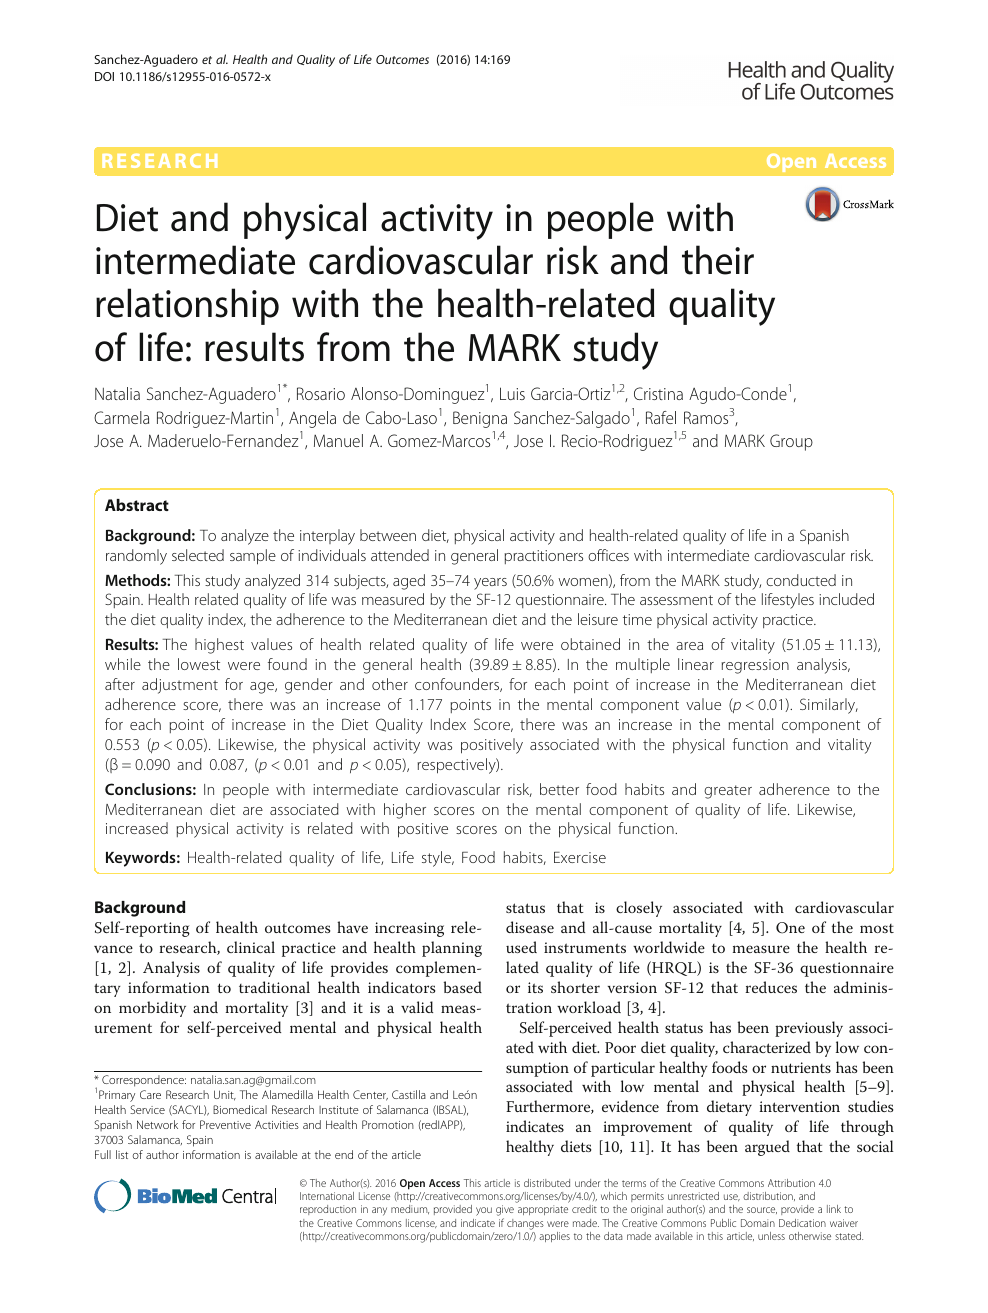 Diet and physical activity in people with intermediate